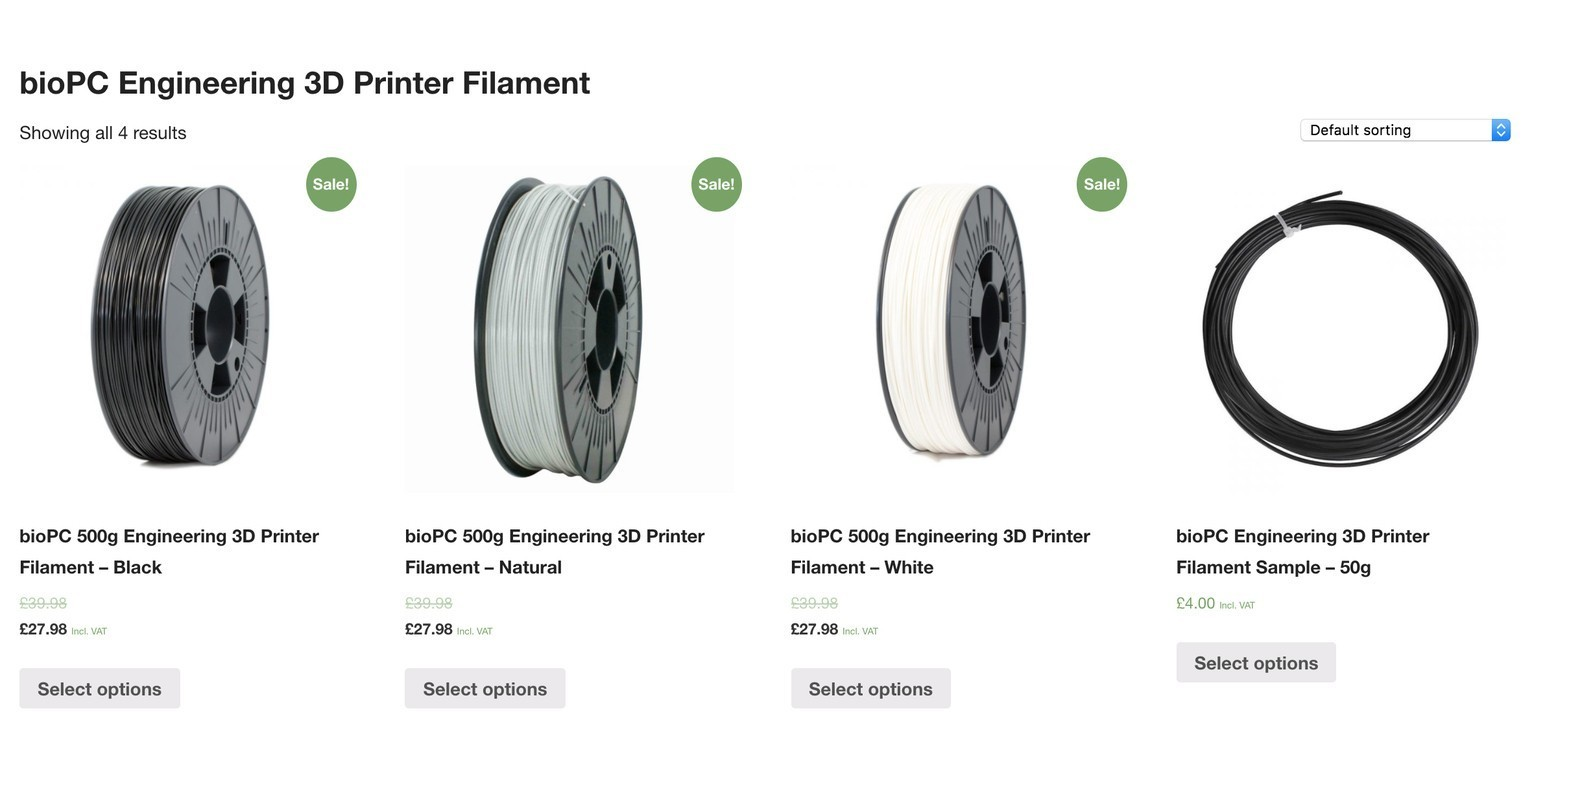 Introducing bioPC – the best 3D printer filament for engineering applications in 3D printing